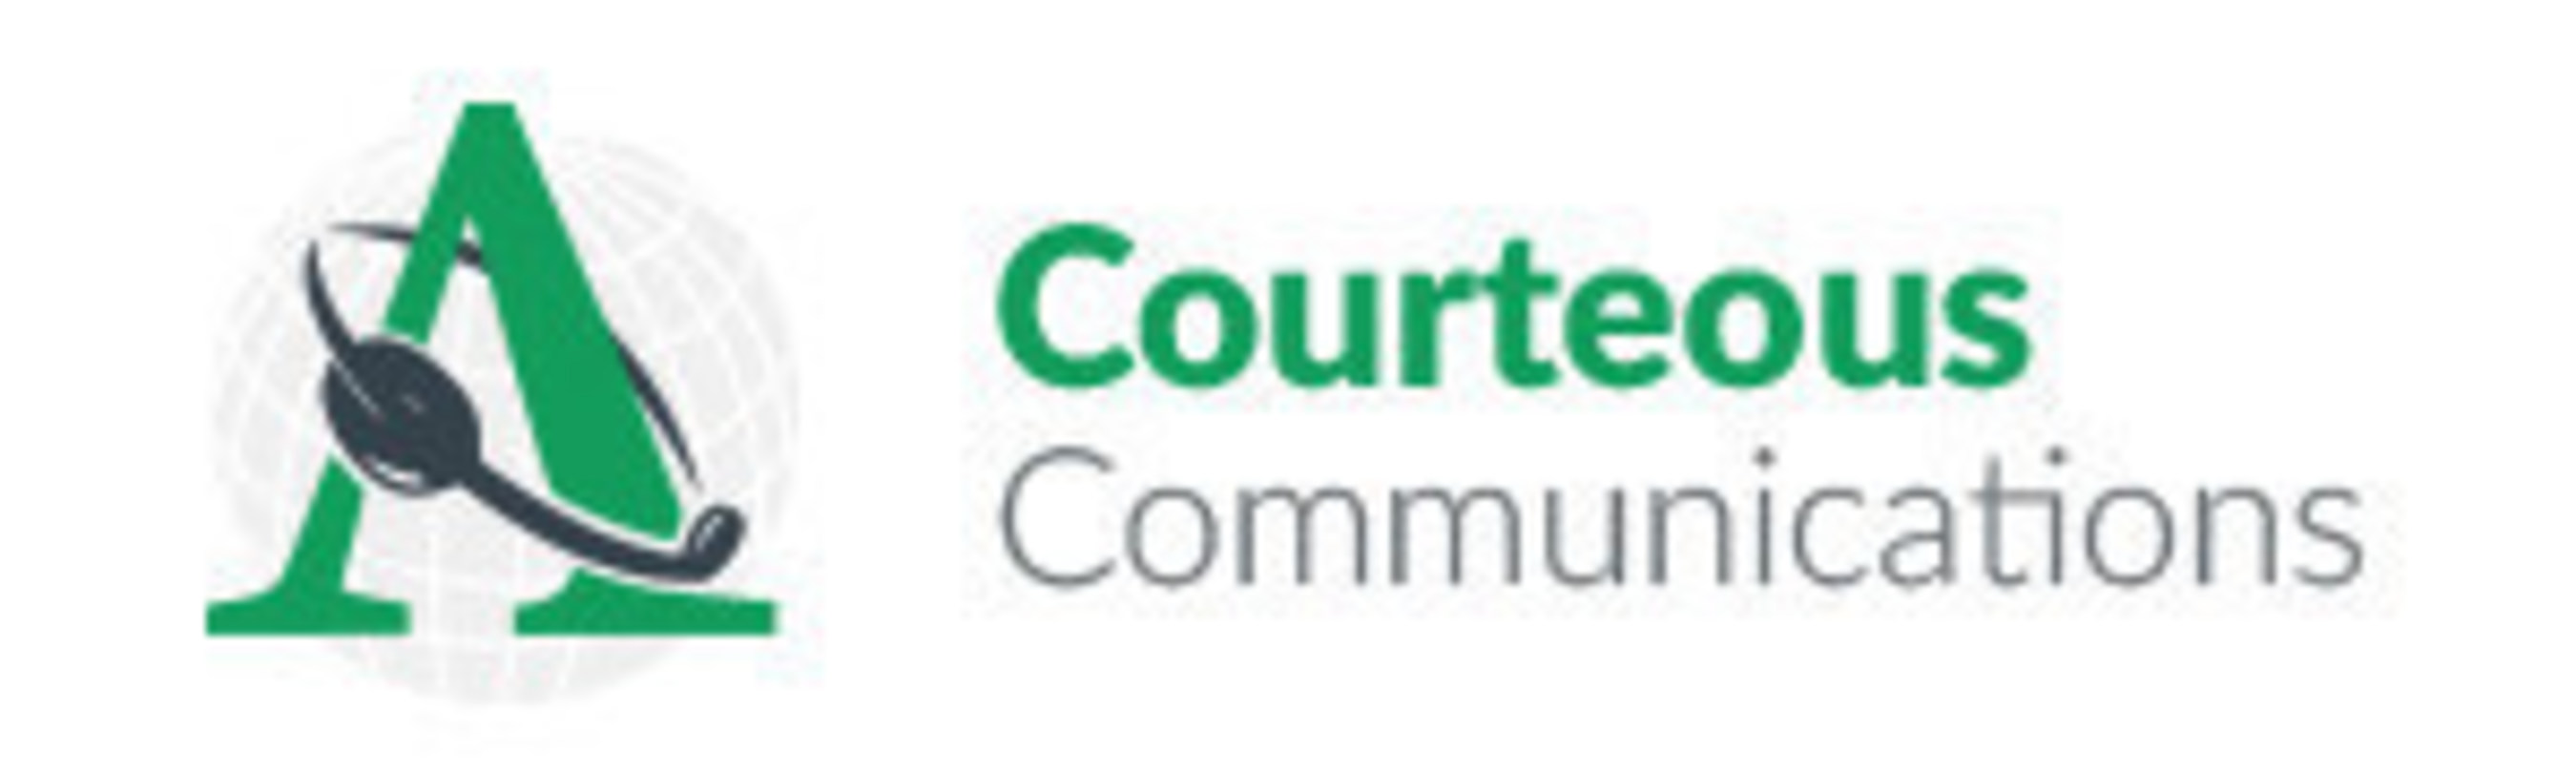 A Courteous Communications Partners With Christian Service Center of Central Florida to Help Feed The Hungry